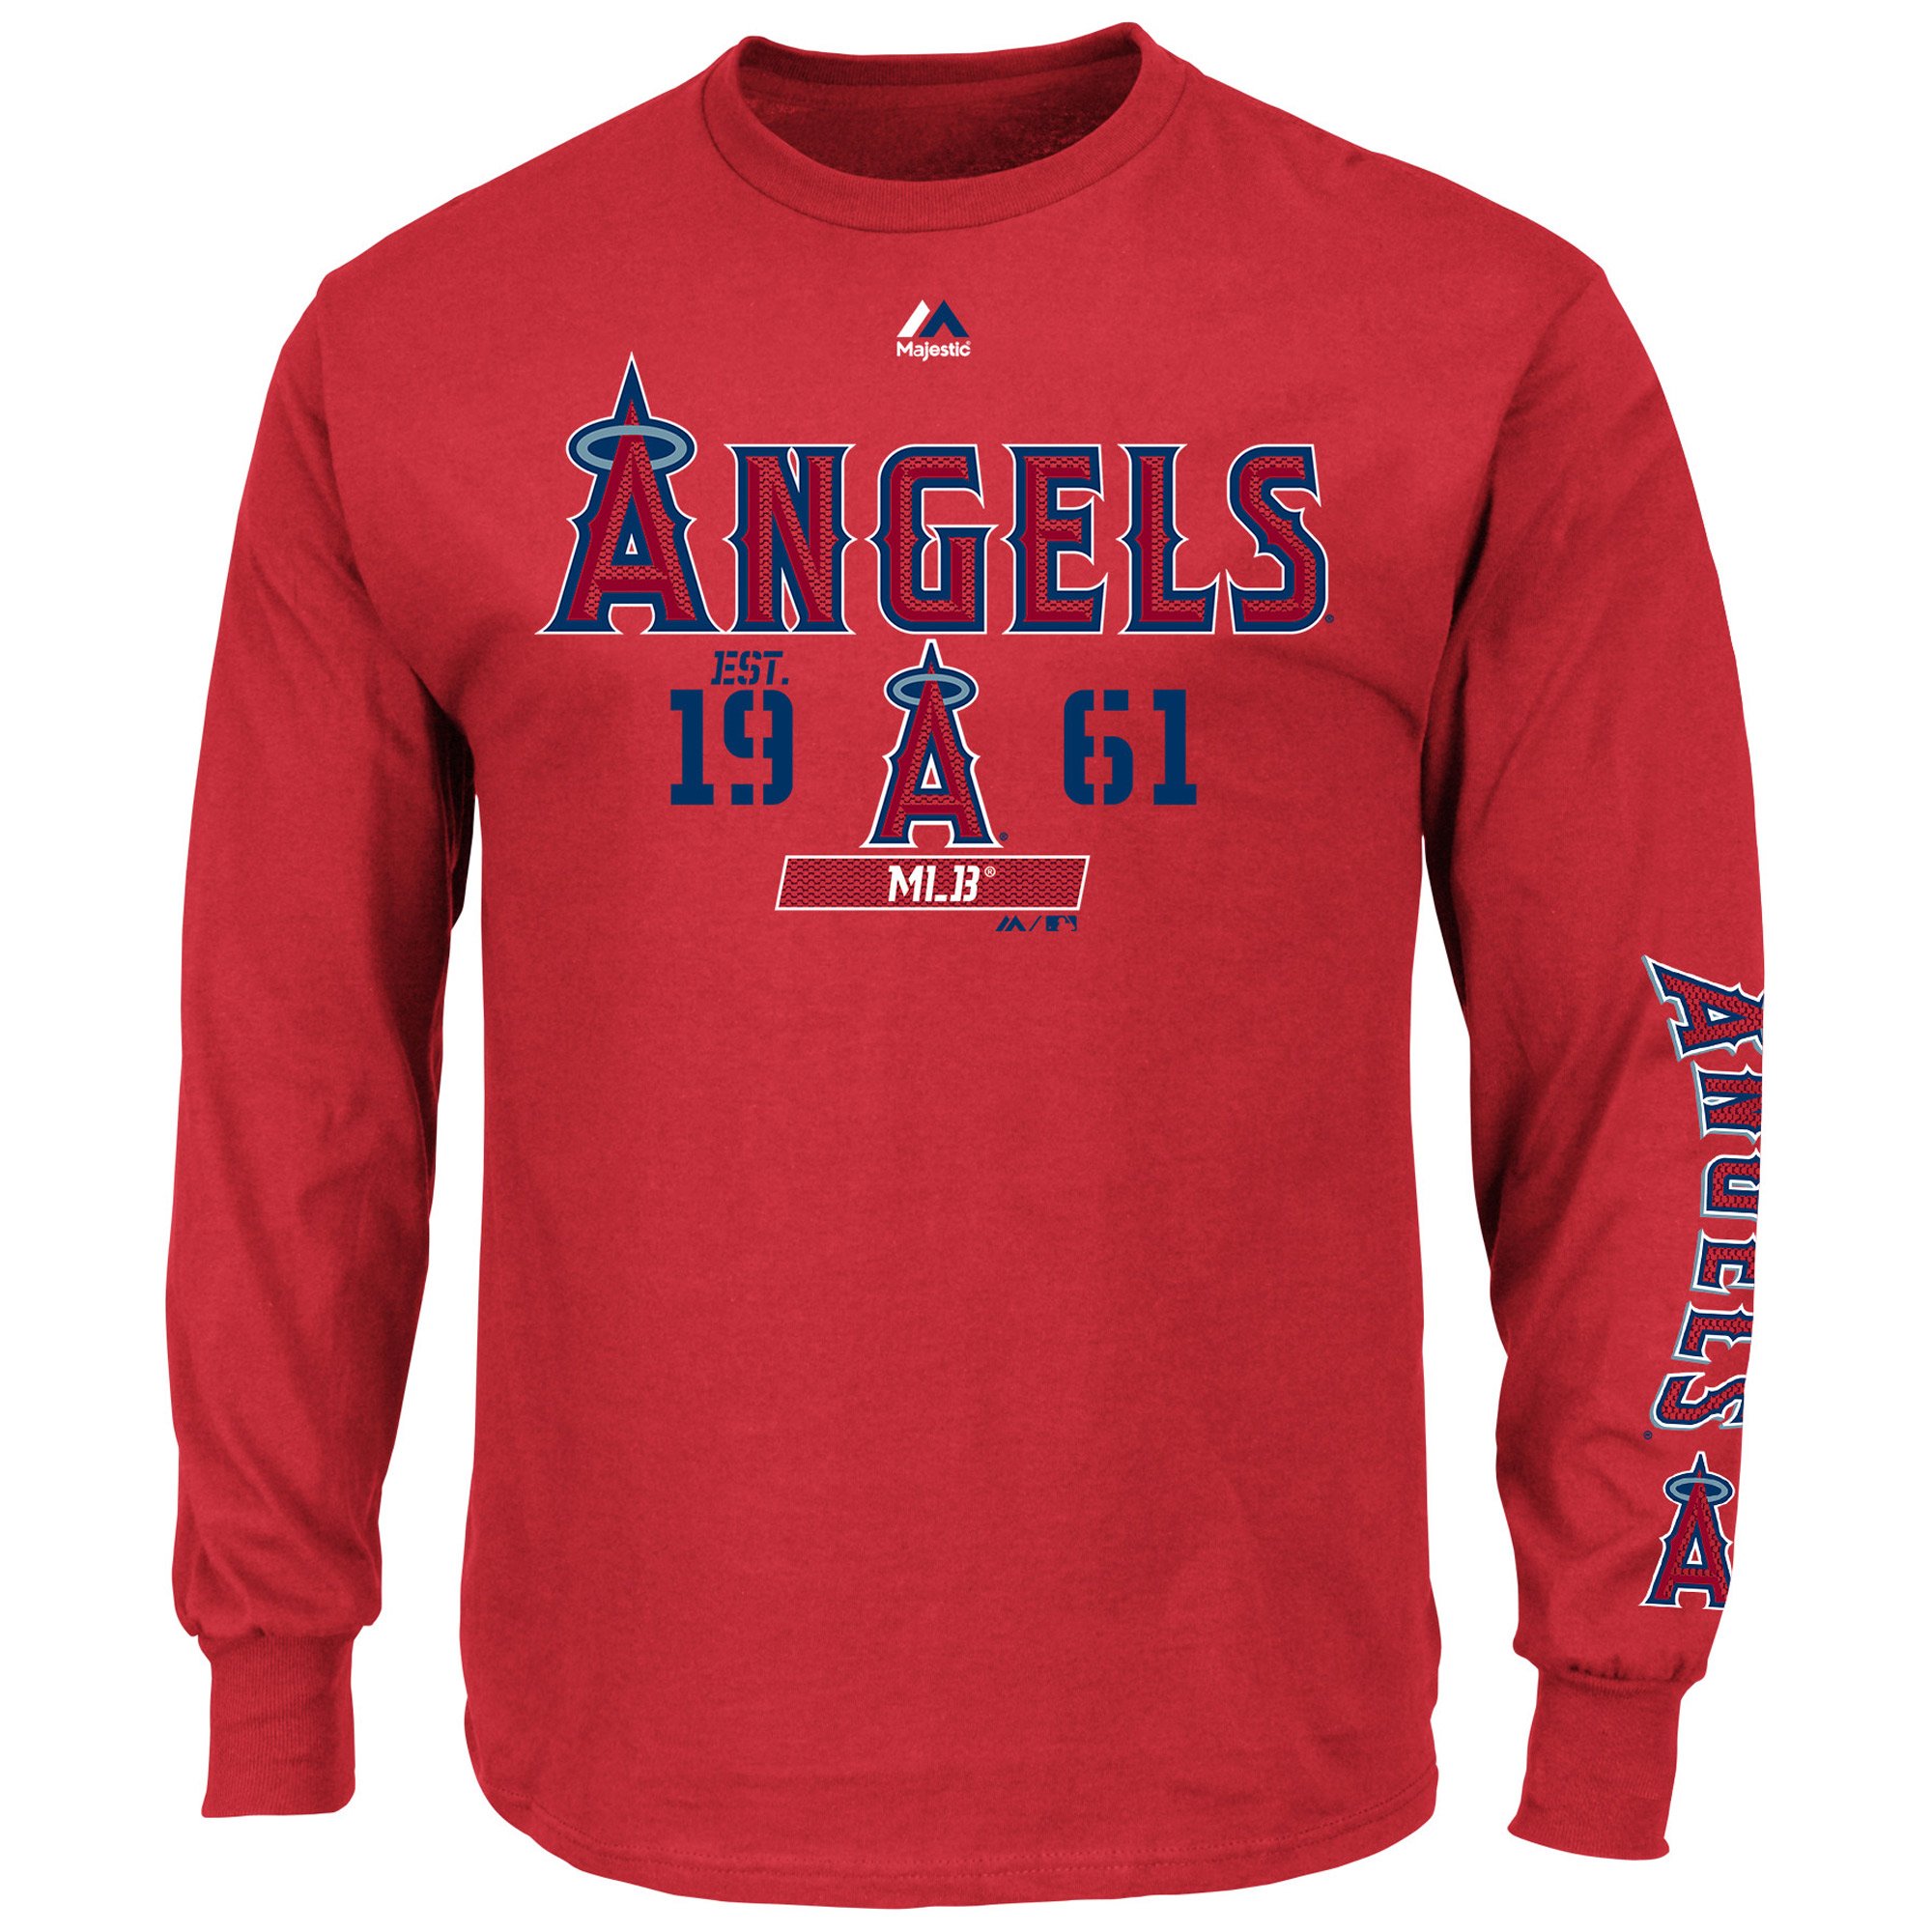 Los Angeles Angels Majestic Flawless Victory Long Sleeve T-Shirt - Red